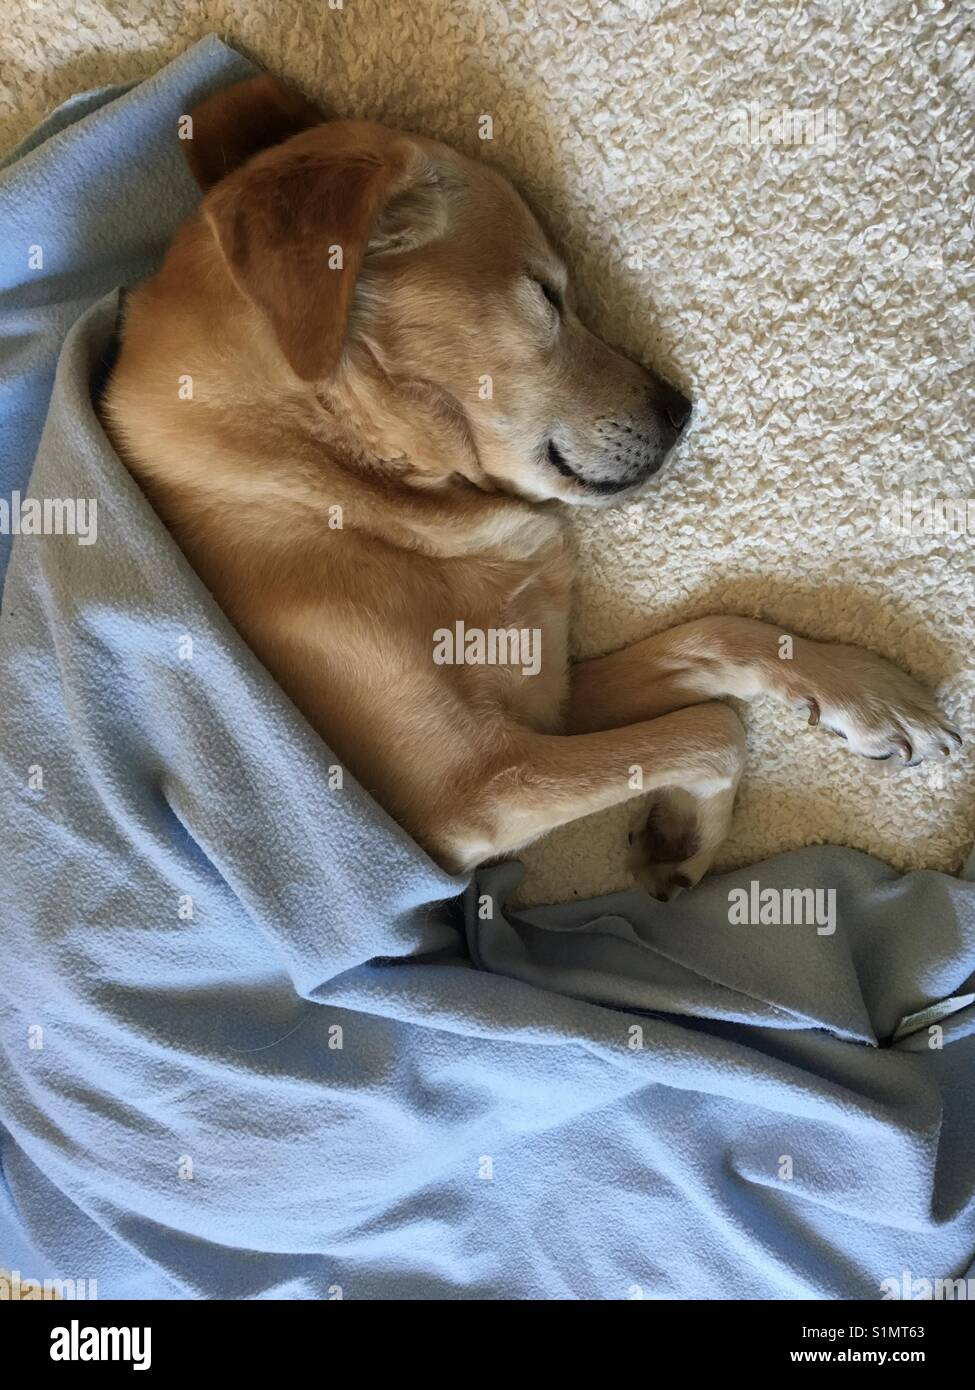 Labrador retriever sleeping in bed with blanket - Stock Image